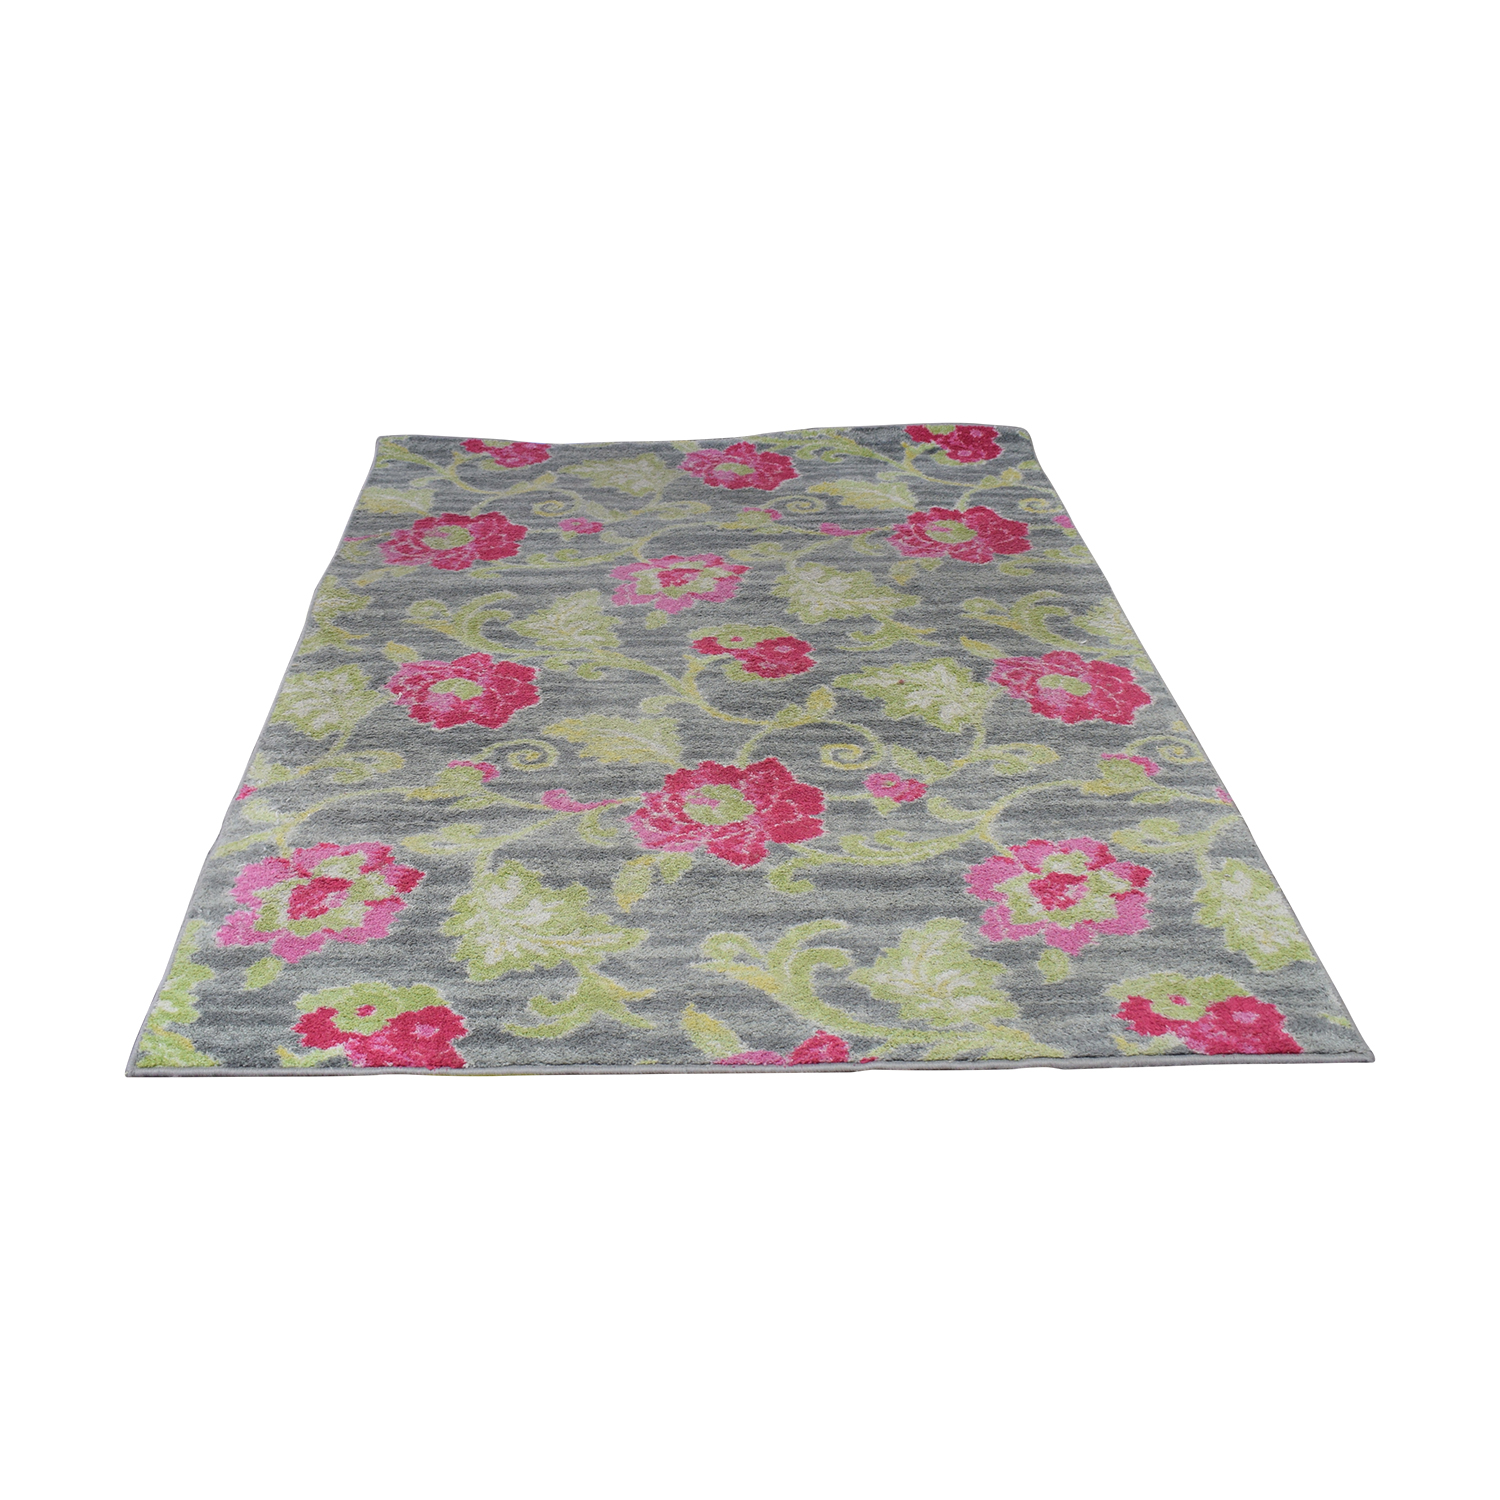 HomeGoods HomeGoods Multi-Colored Floral Rug multi color